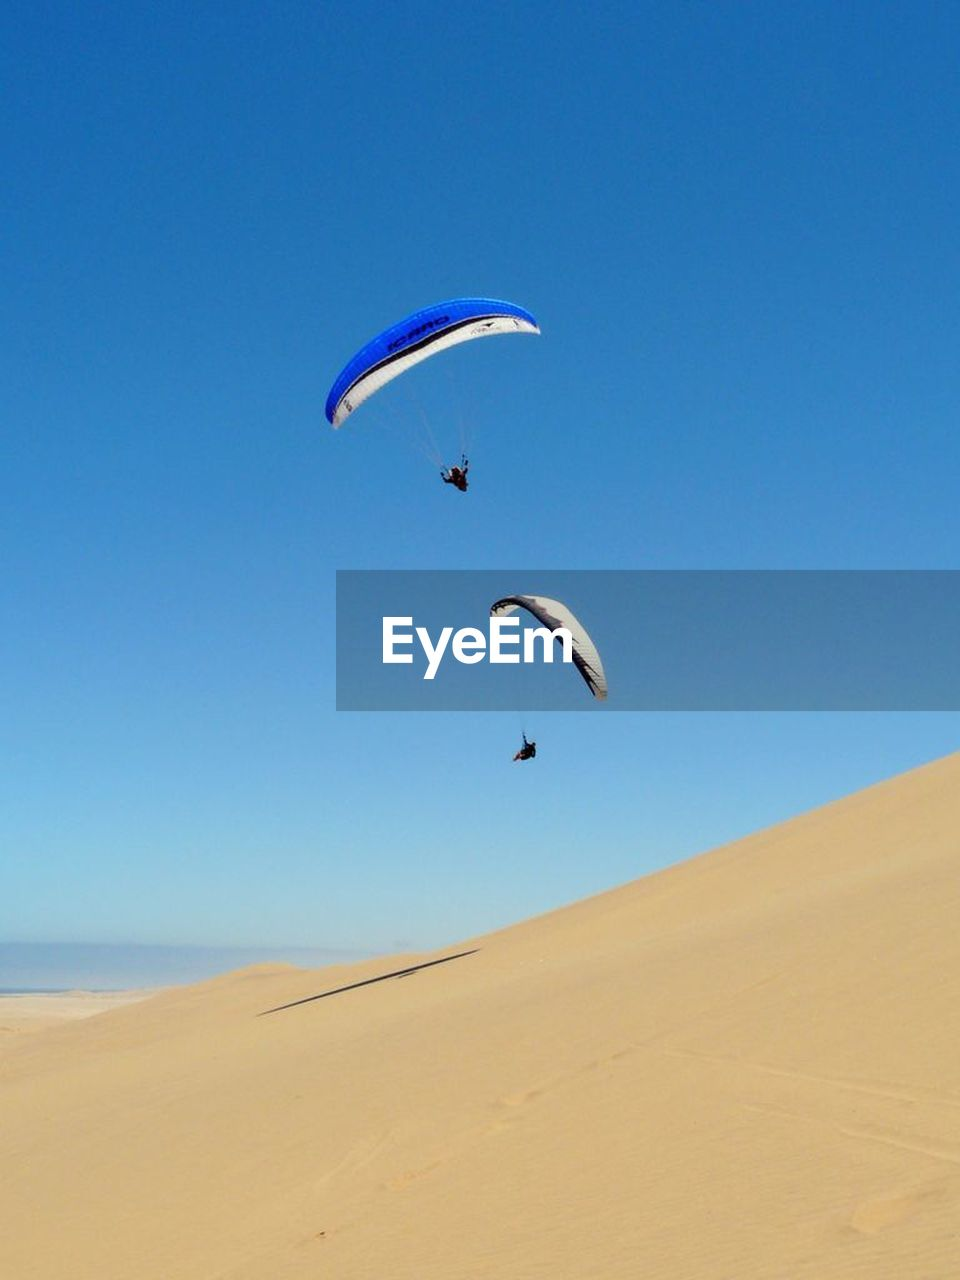 beach, sand, parachute, extreme sports, paragliding, adventure, nature, leisure activity, sky, sport, one person, scenics, day, vacations, full length, outdoors, arid climate, sea, mid-air, clear sky, sand dune, landscape, blue, travel destinations, lifestyles, desert, one man only, beauty in nature, people, adult